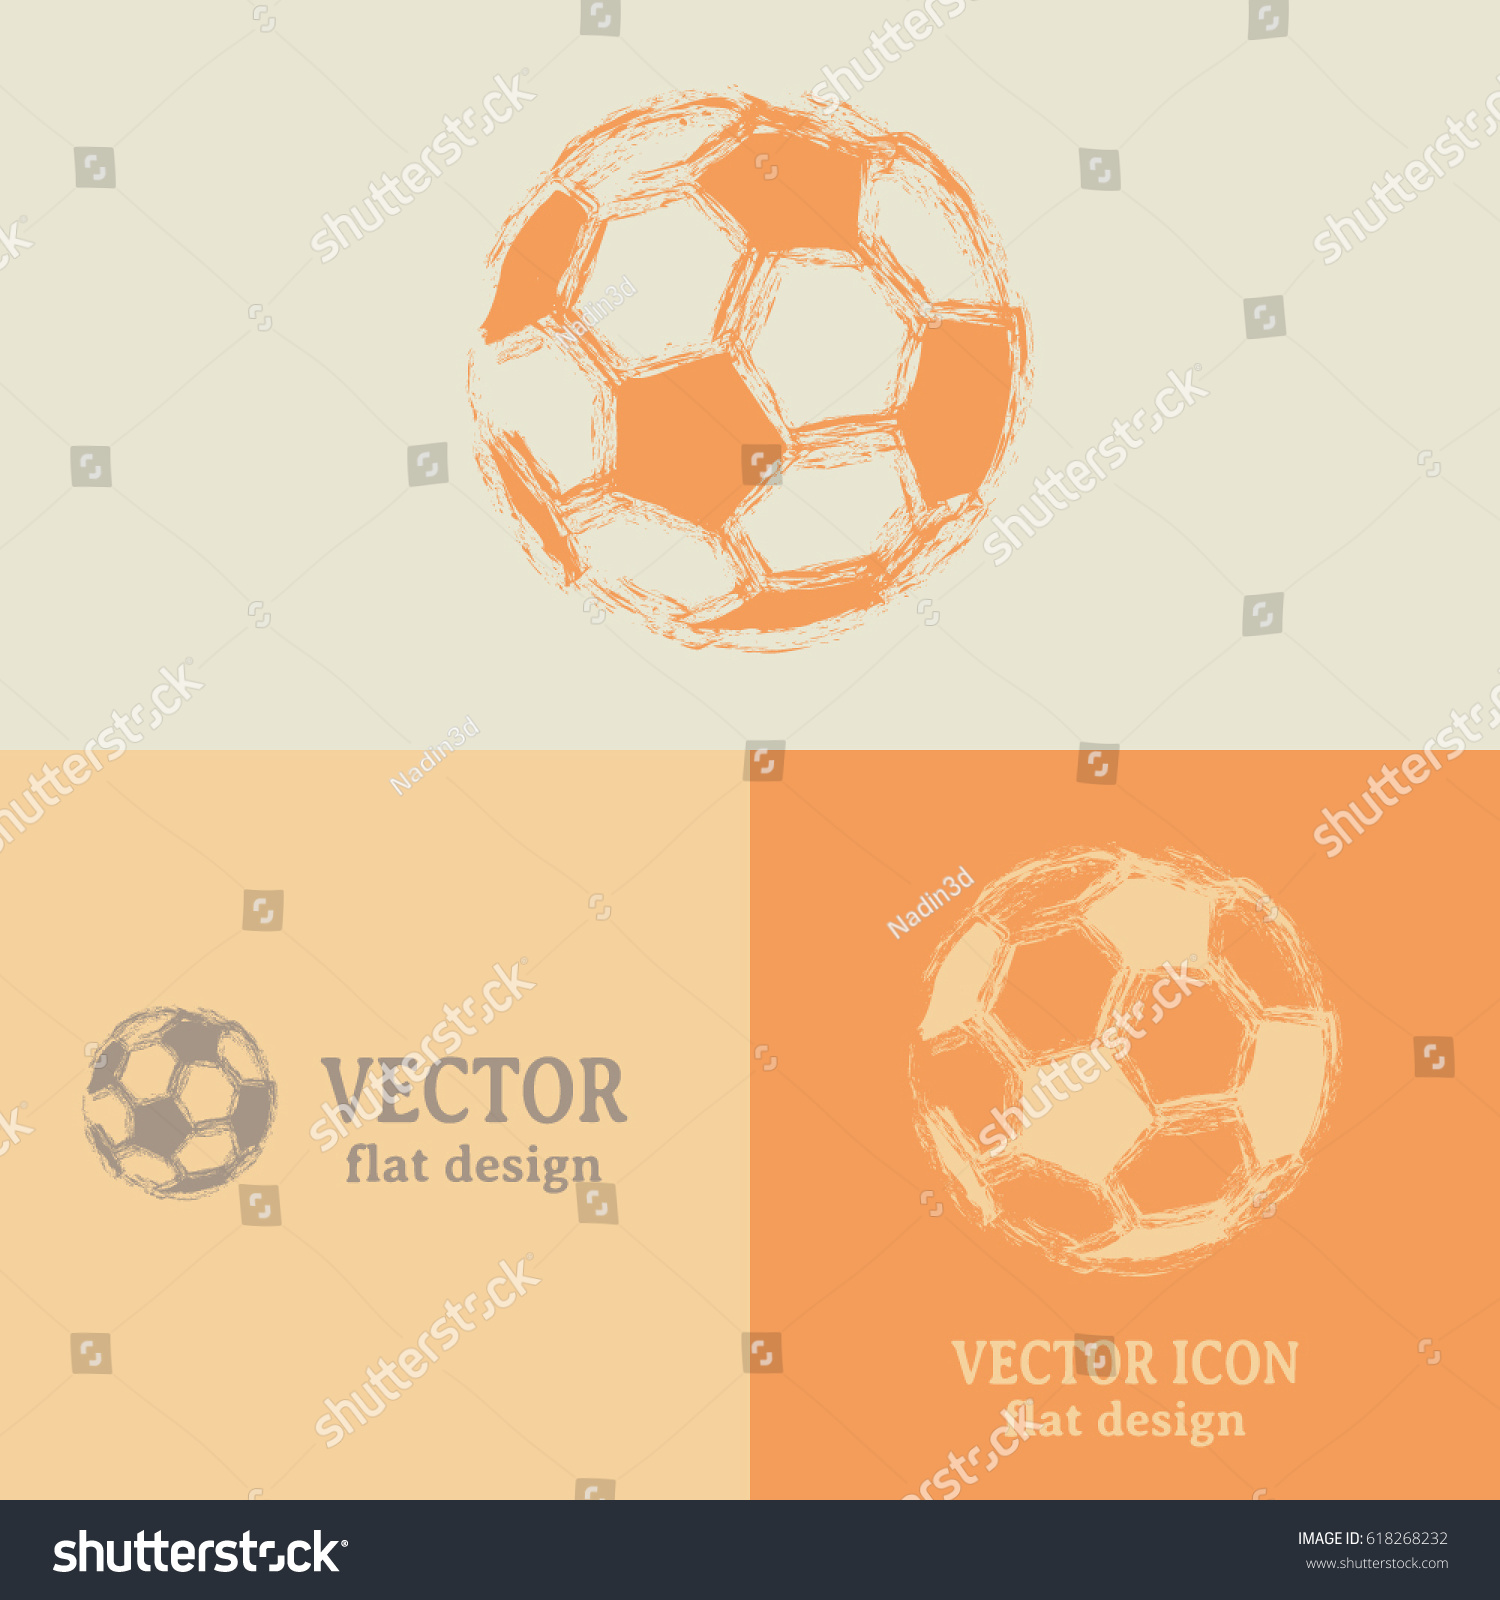 Business Cards Design Soccer Ball Icon Stock Photo (Photo, Vector ...